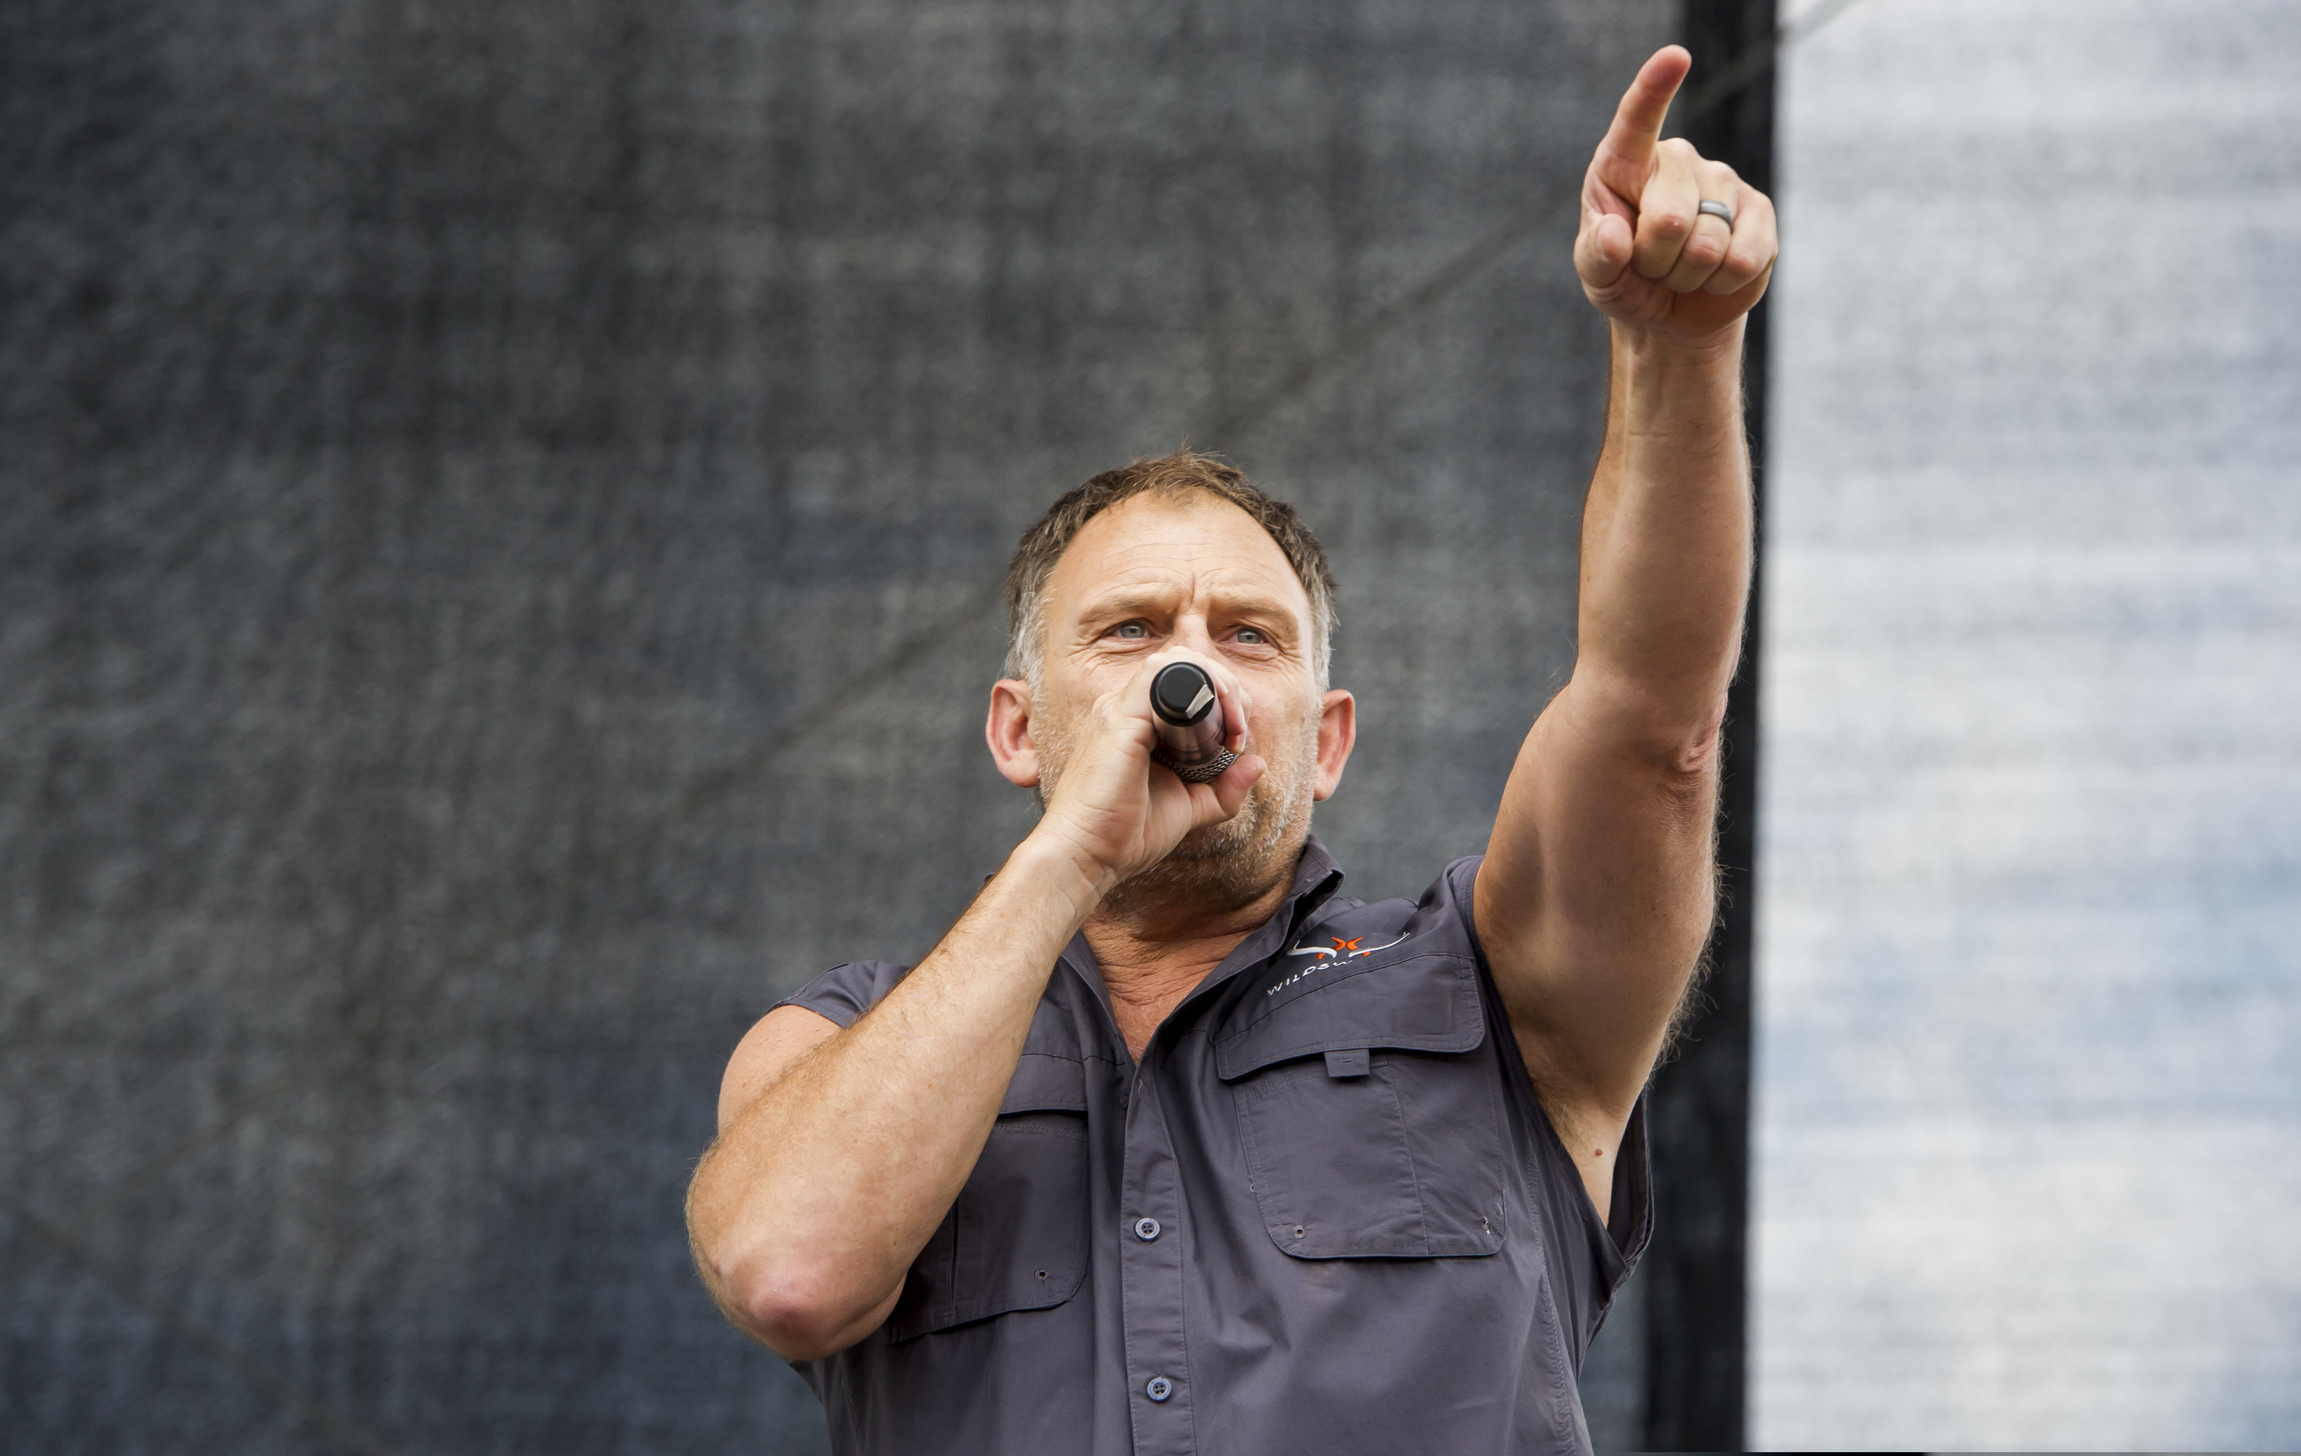 Steve Hofmeyr has previously ruffled feathers with what many see as racially motivated statements on social media, as well as posting photos of the old South African flag.